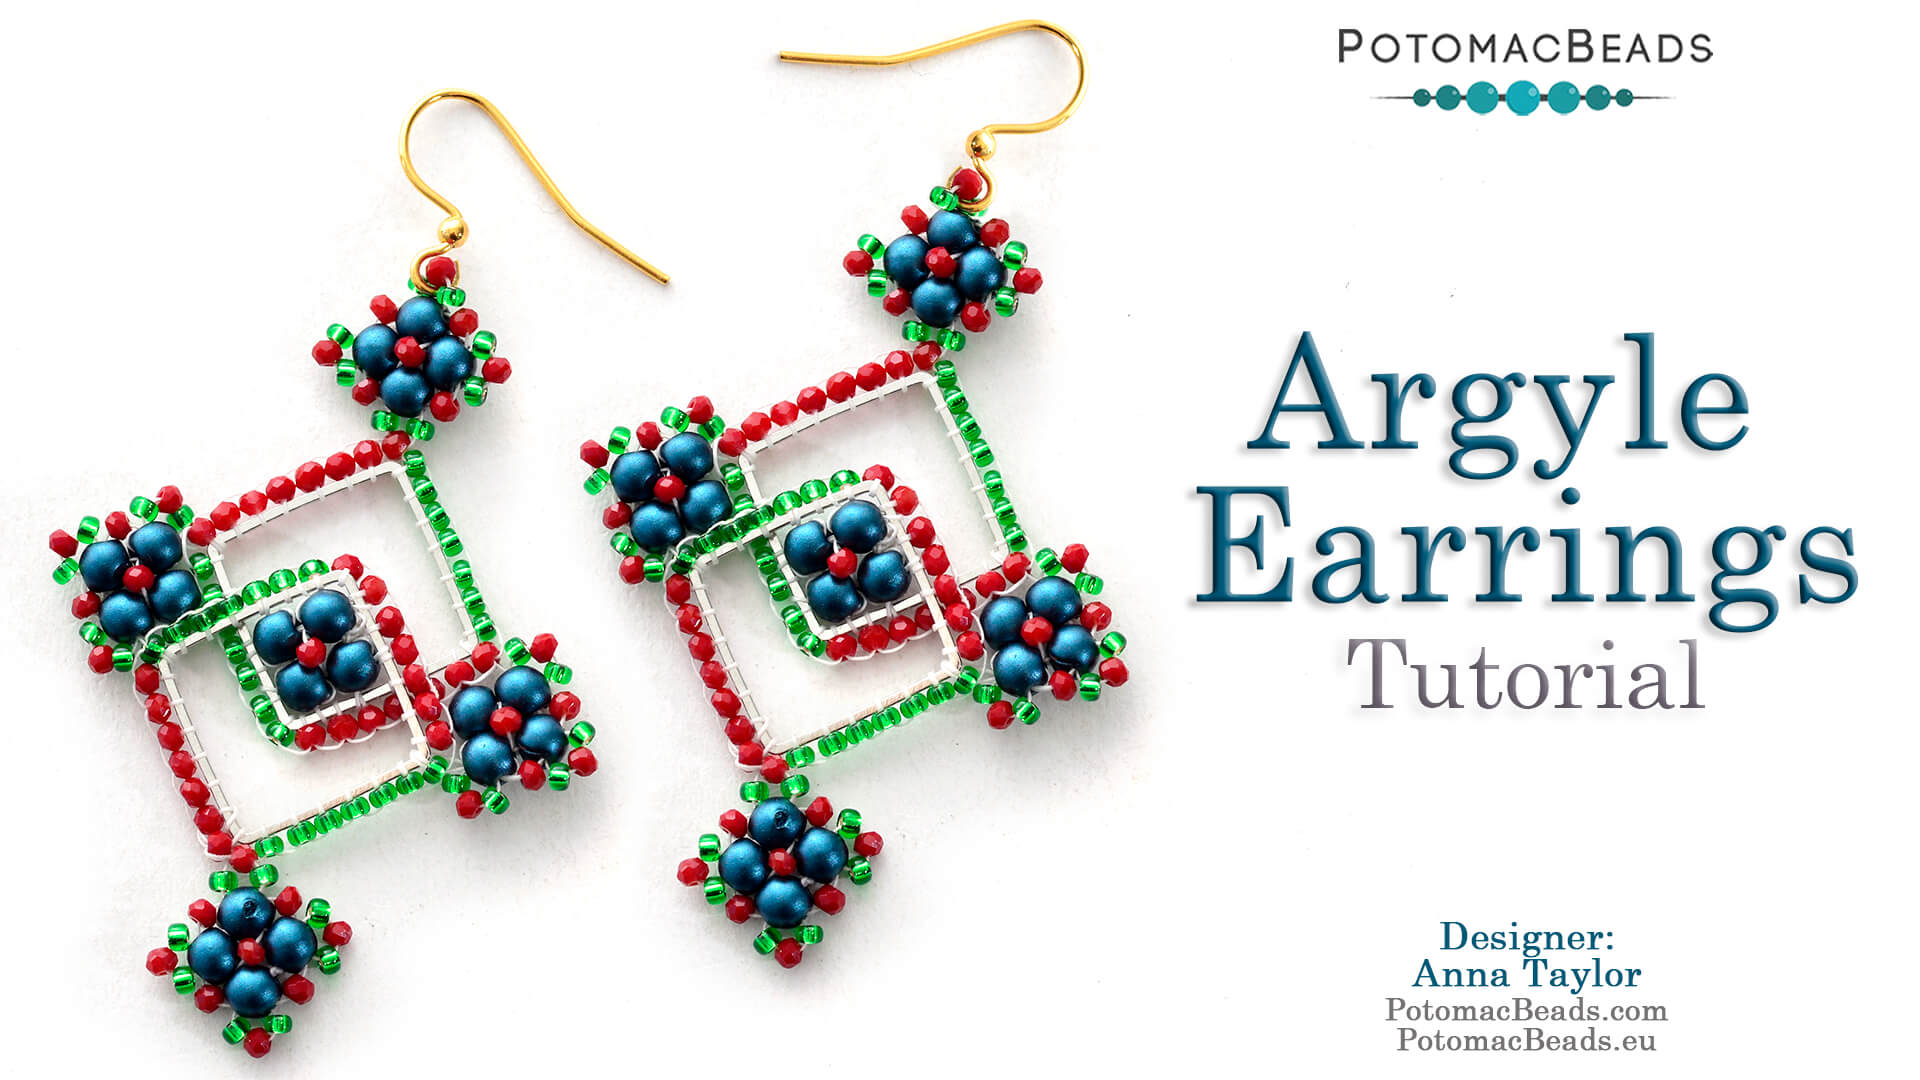 How to Bead Jewelry / Videos Sorted by Beads / RounDuo® & RounDuo® Mini Bead Videos / Argyle Earrings Tutorial